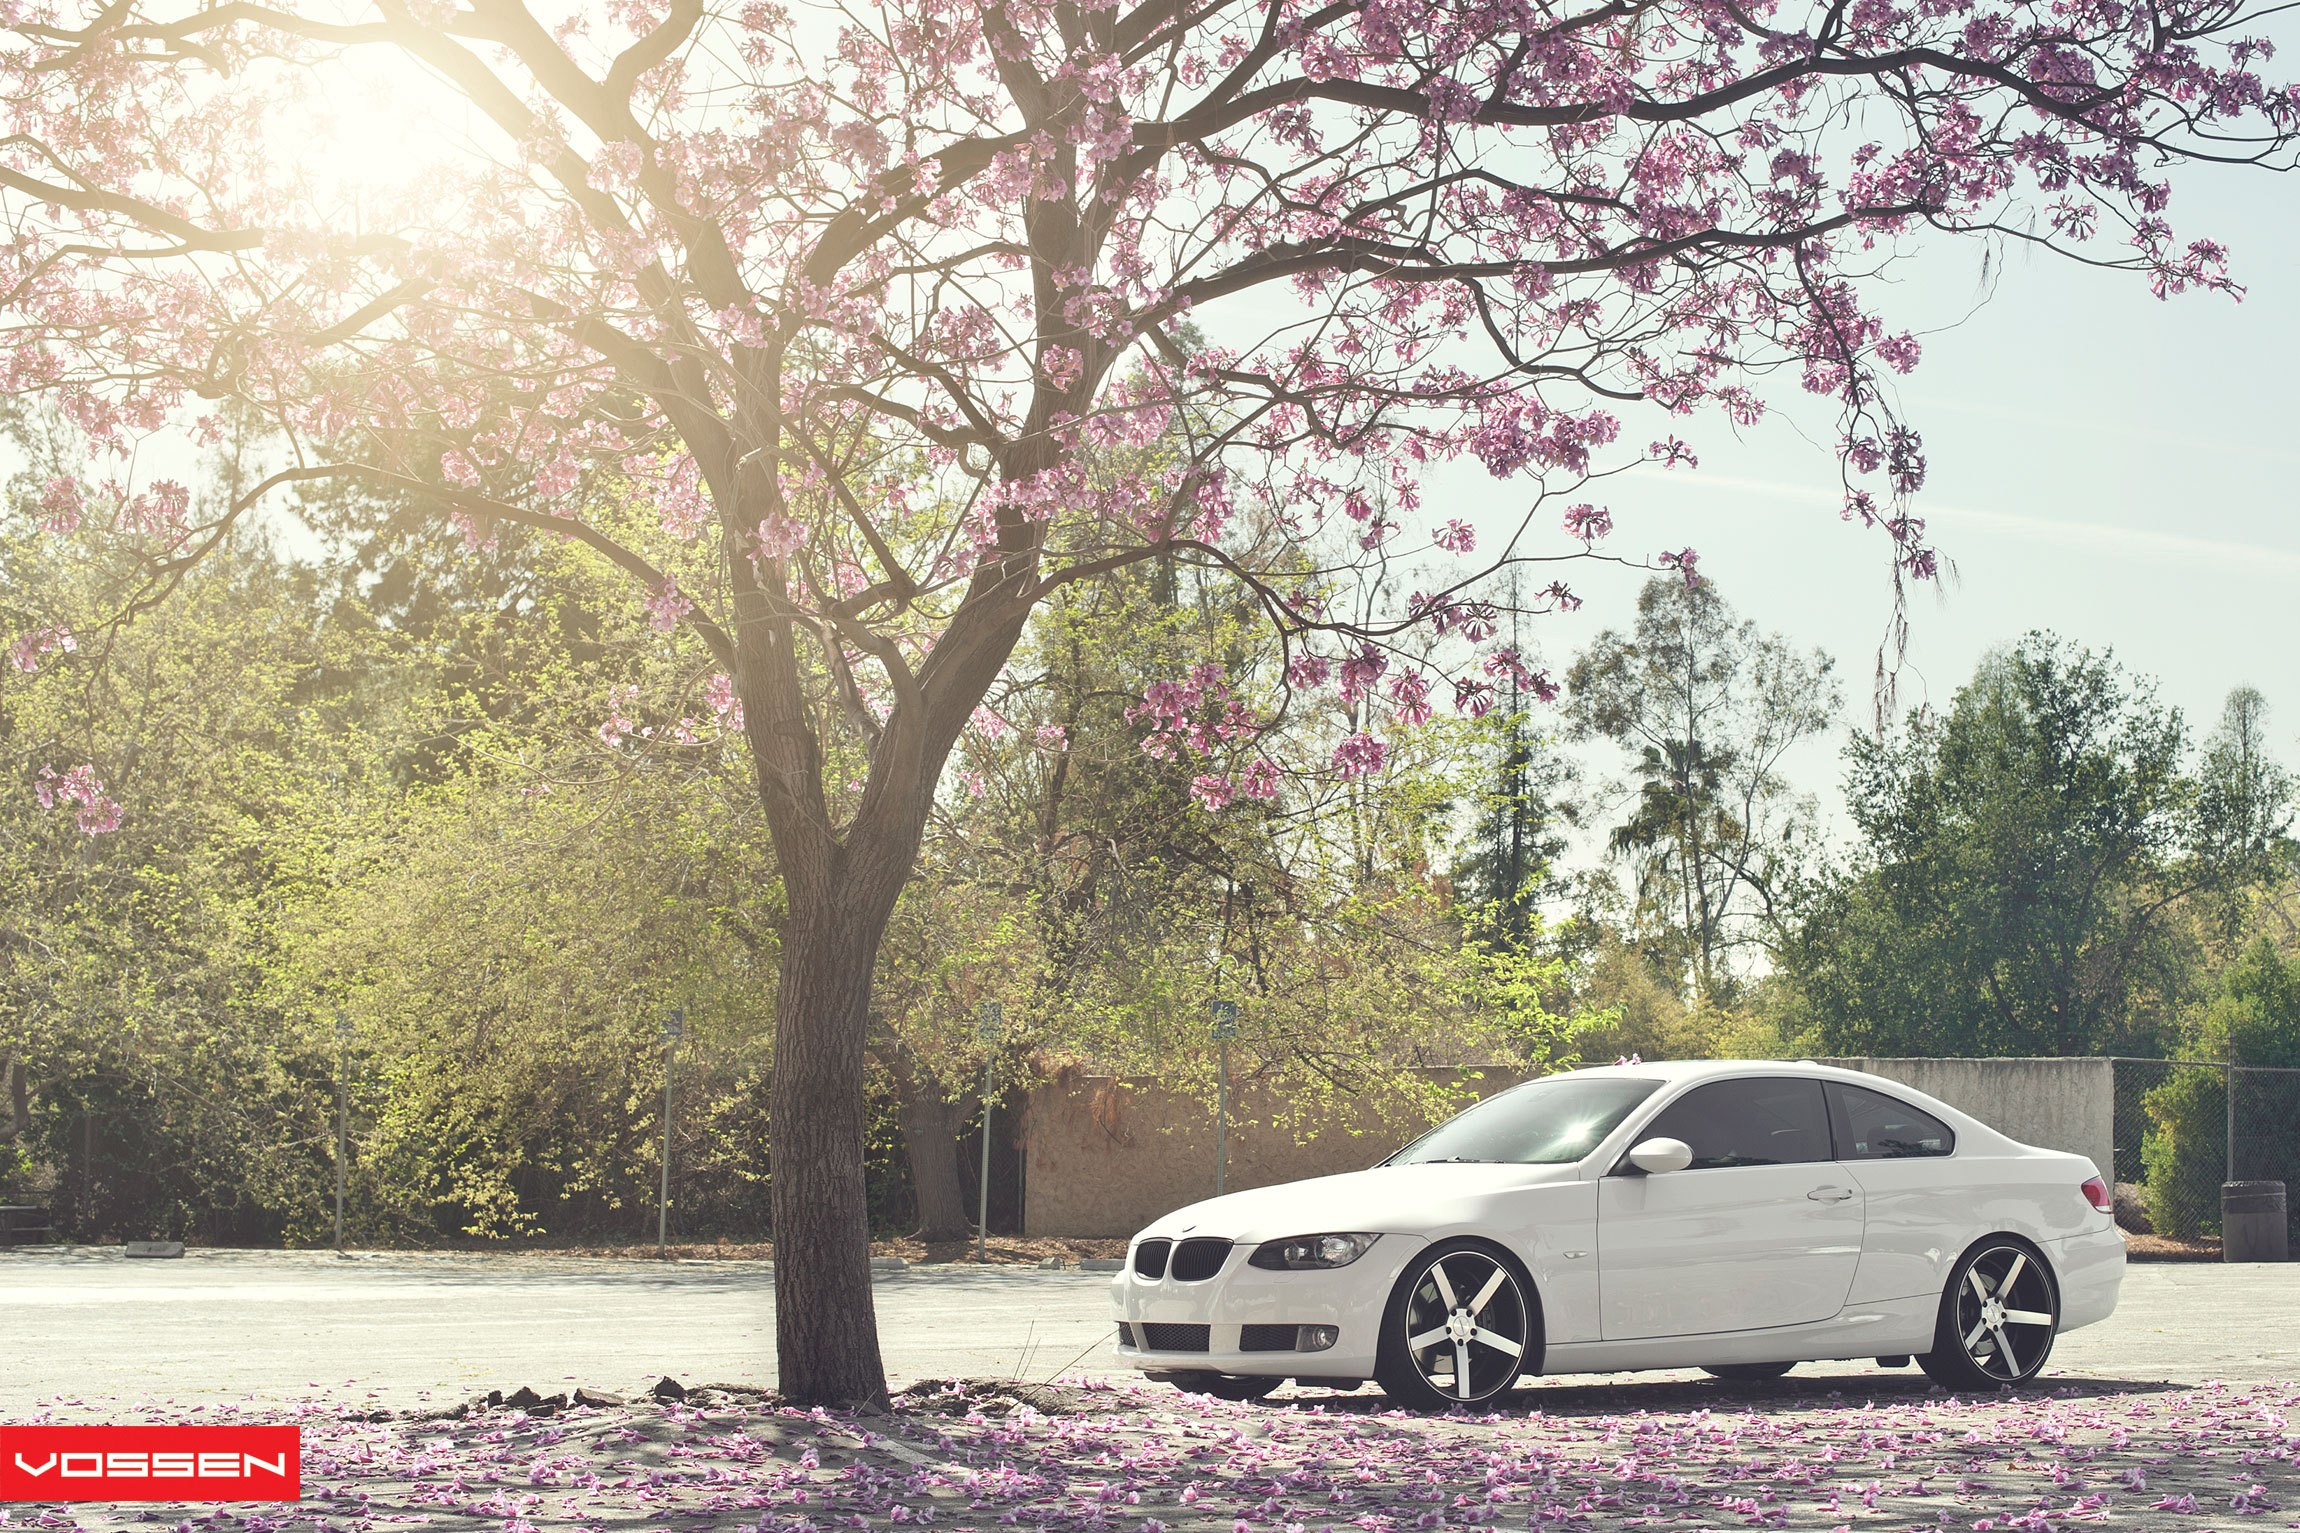 Aftermarket Side Skirts on White BMW 3-Series - Photo by Vossen